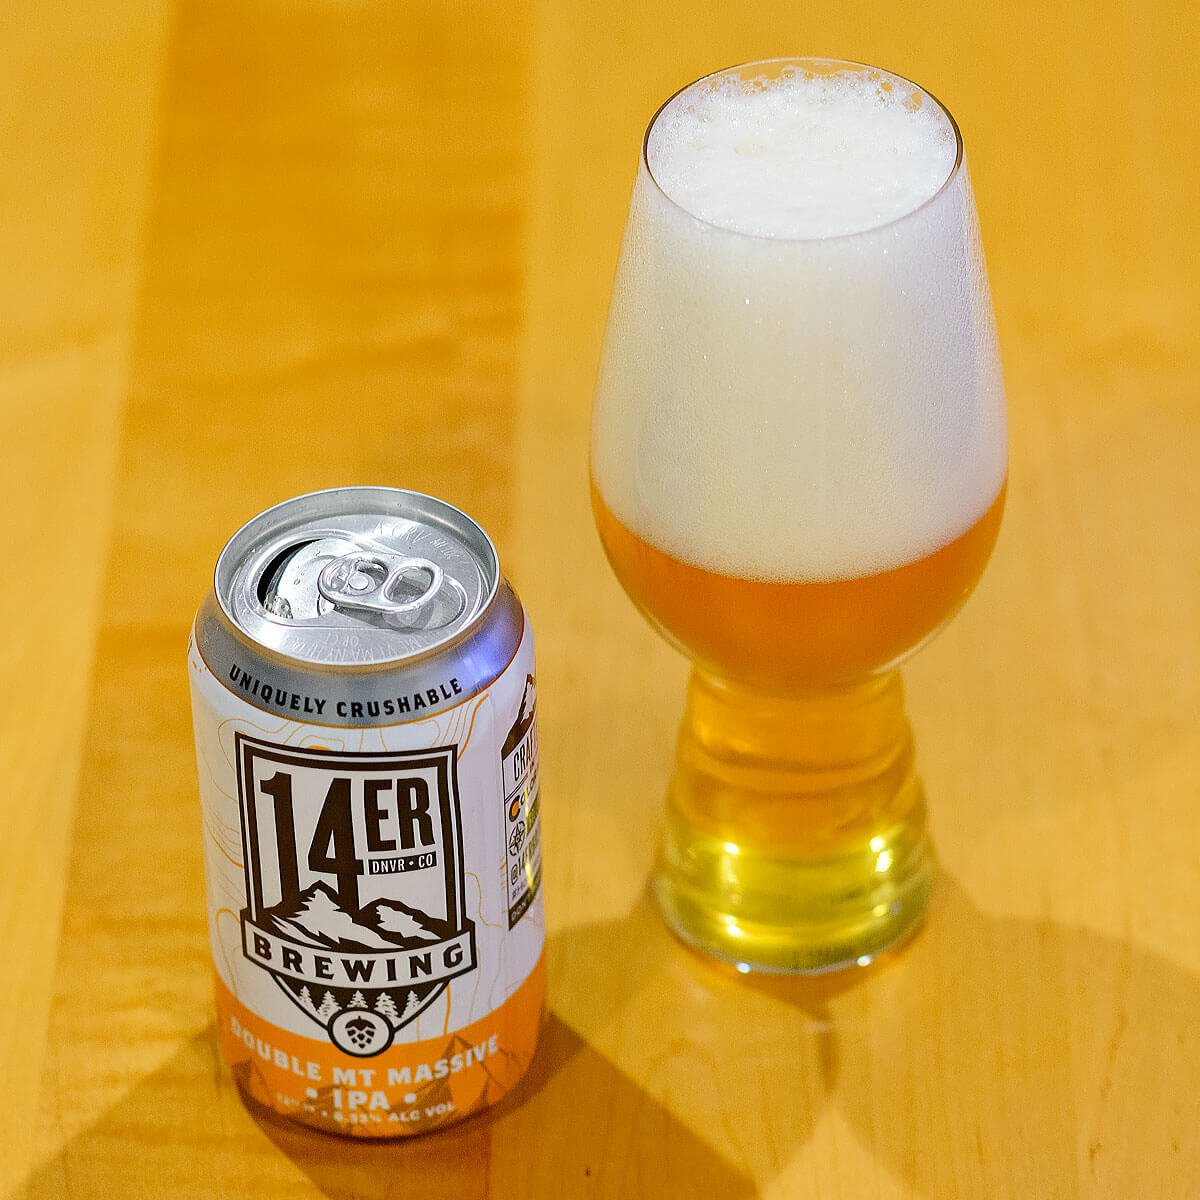 Double Mt Massive IPA is an American Double IPA brewed by 14er Brewing Company